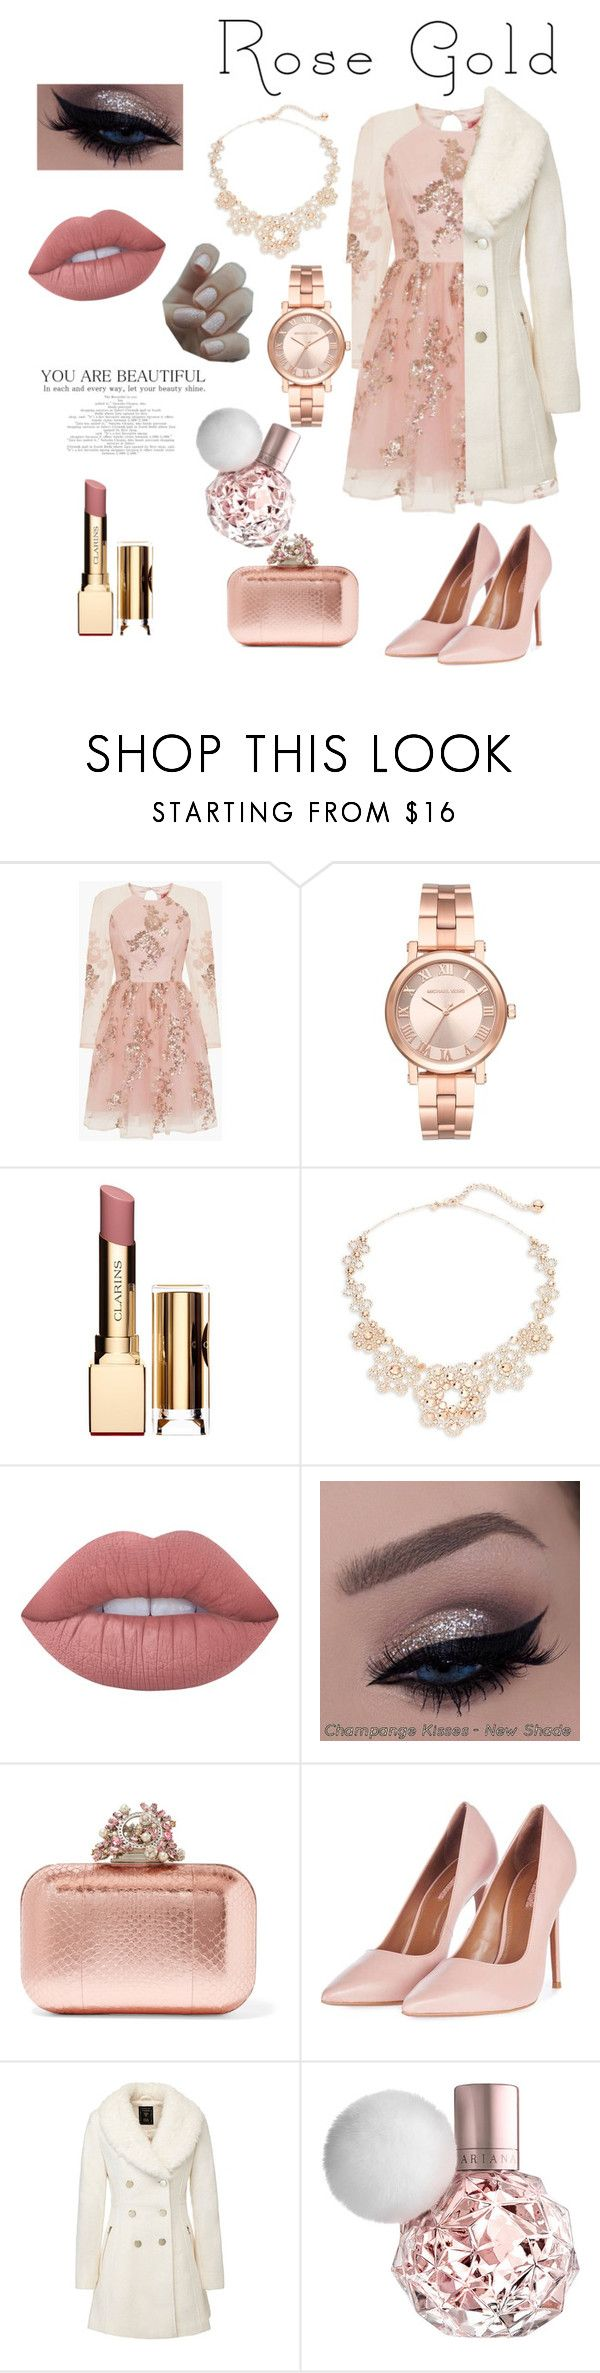 """""""Rose gold"""" by bareyshka-1 ❤ liked on Polyvore featuring beauty, Chi Chi, Michael Kors, Clarins, Kate Spade, Lime Crime, Jimmy Choo and Topshop"""